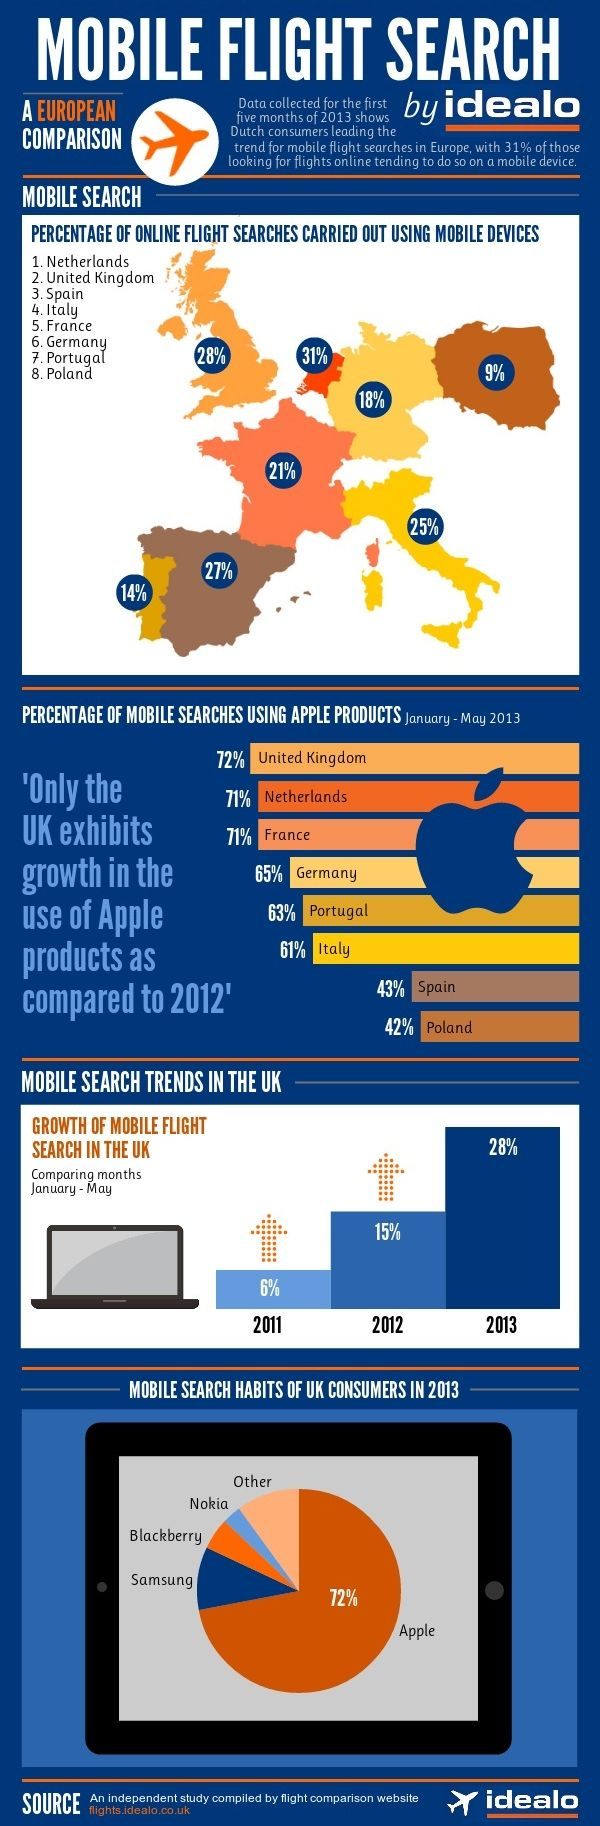 Mobile #Flight Search - a european comparison by Idealo - Infographic